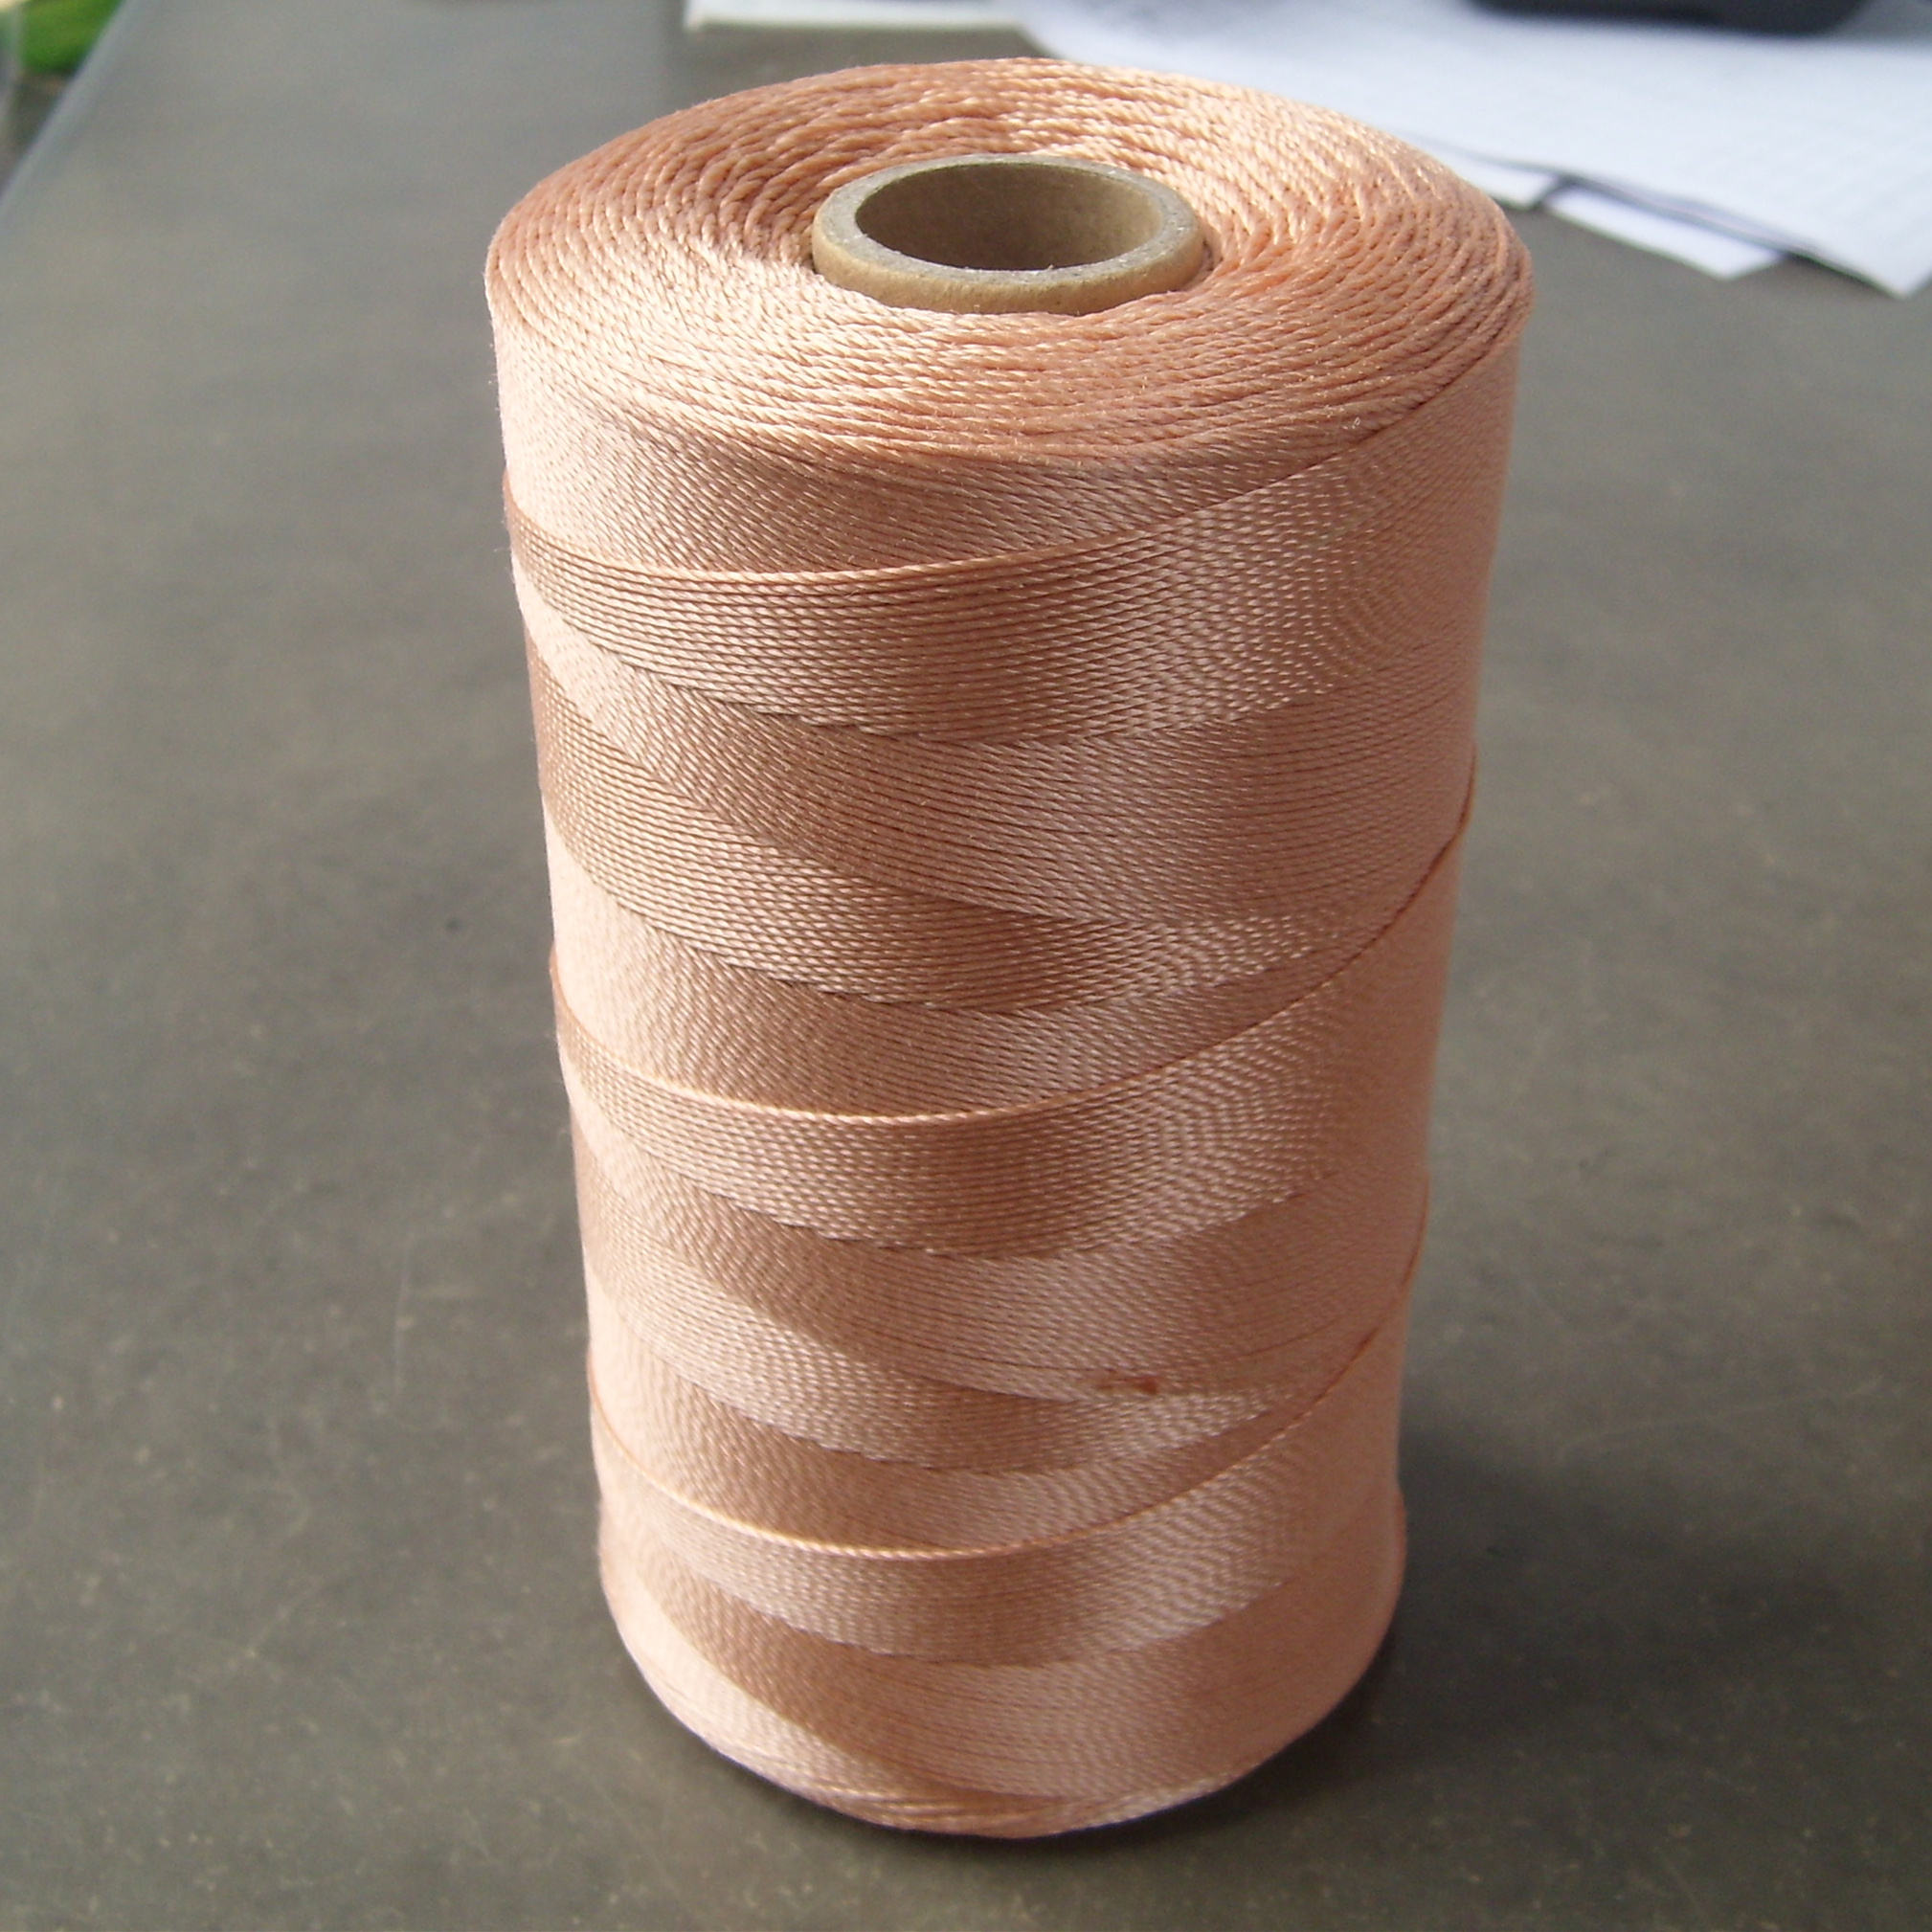 210d/18 fishing twine for fishing usage